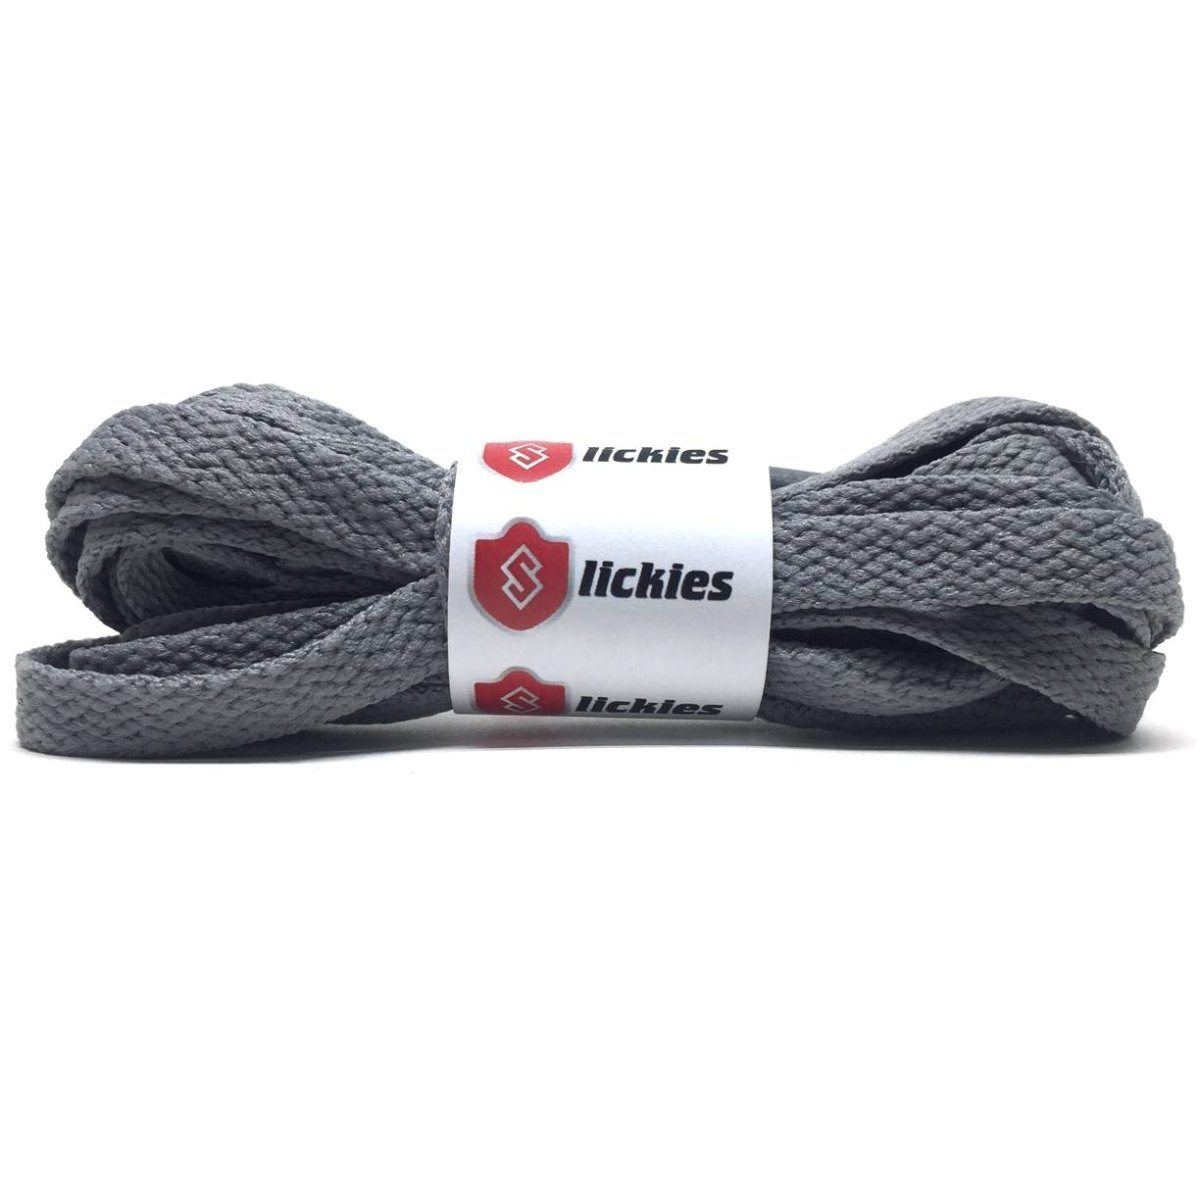 Flat Thin - BASICS Flat Thin Laces - Grey